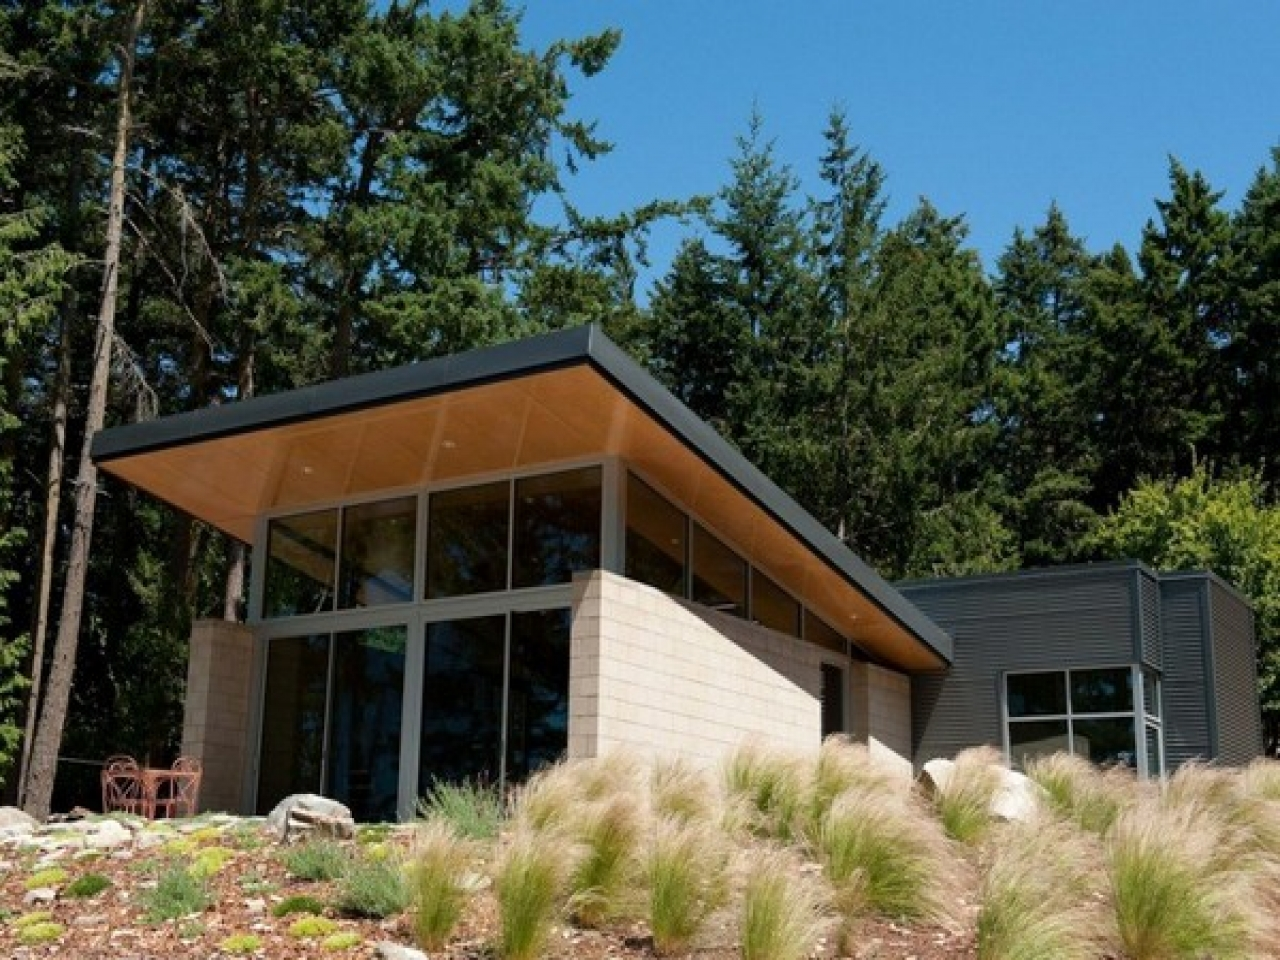 modern-cabin-with-shed-roof-modern-cabin-ikea-lrg-065616aa0bb0083d Ideas For Backyard Trees on diy tree ideas, yard tree ideas, tree surround ideas, hall tree ideas, fall tree ideas, landscape tree ideas, mulch around tree ideas, deck tree ideas, christmas tree ideas, patio tree ideas, holiday tree ideas, family tree ideas, outdoor tree ideas, wall tree ideas, wetland landscaping ideas, backyard palm trees, driveway tree ideas, privacy tree ideas, winter tree ideas, landscaping around large trees ideas,